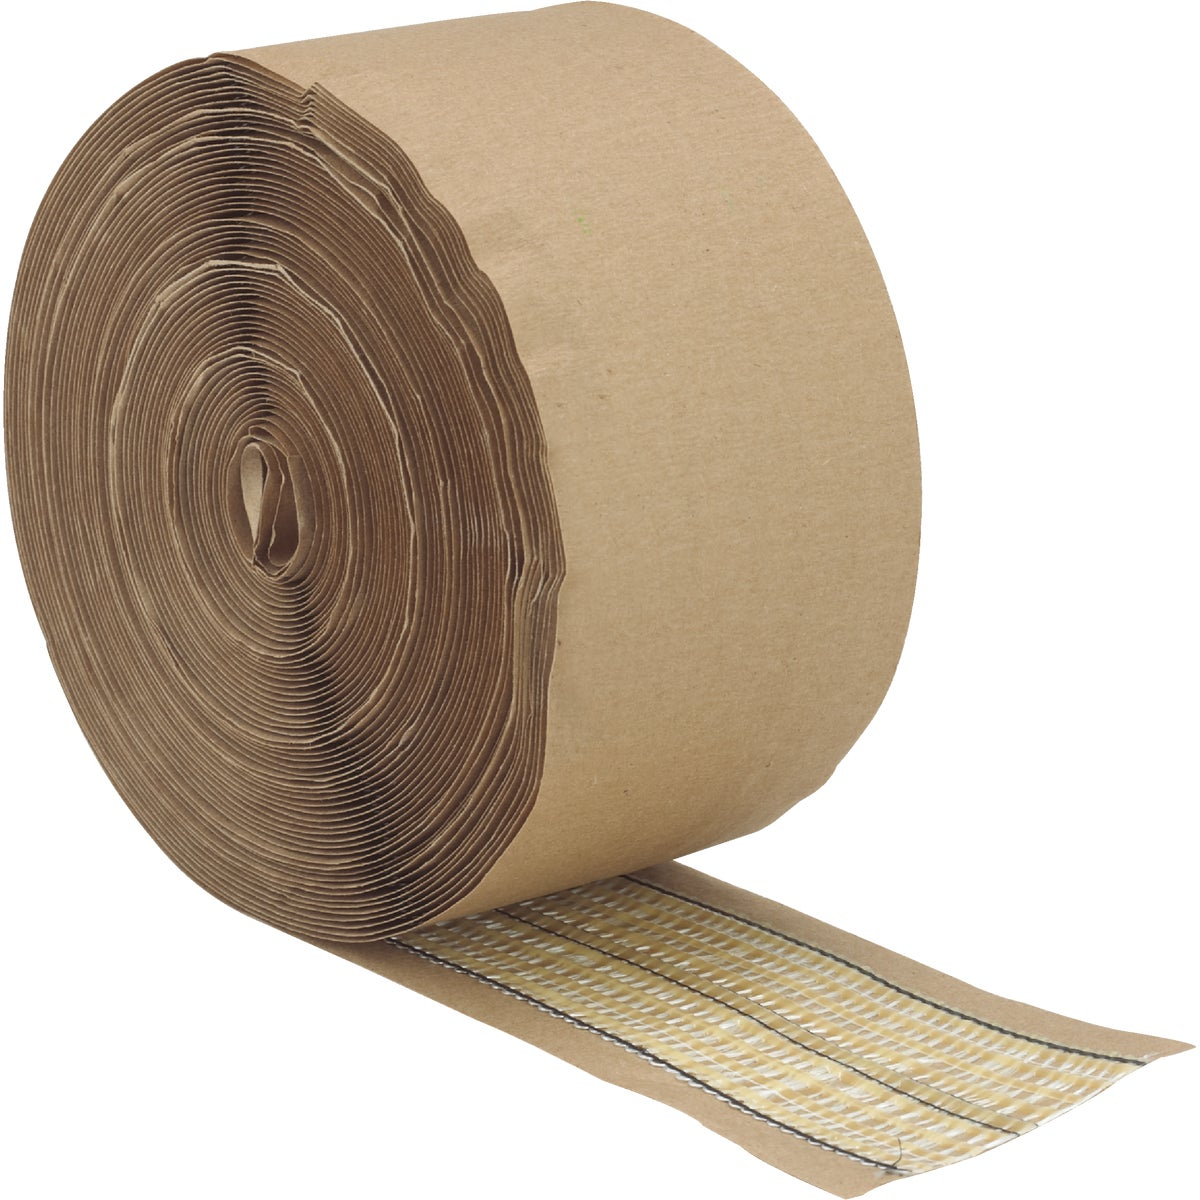 HEAT BOND SEAMING TAPE - 50-240 by Qep Co Inc Roberts